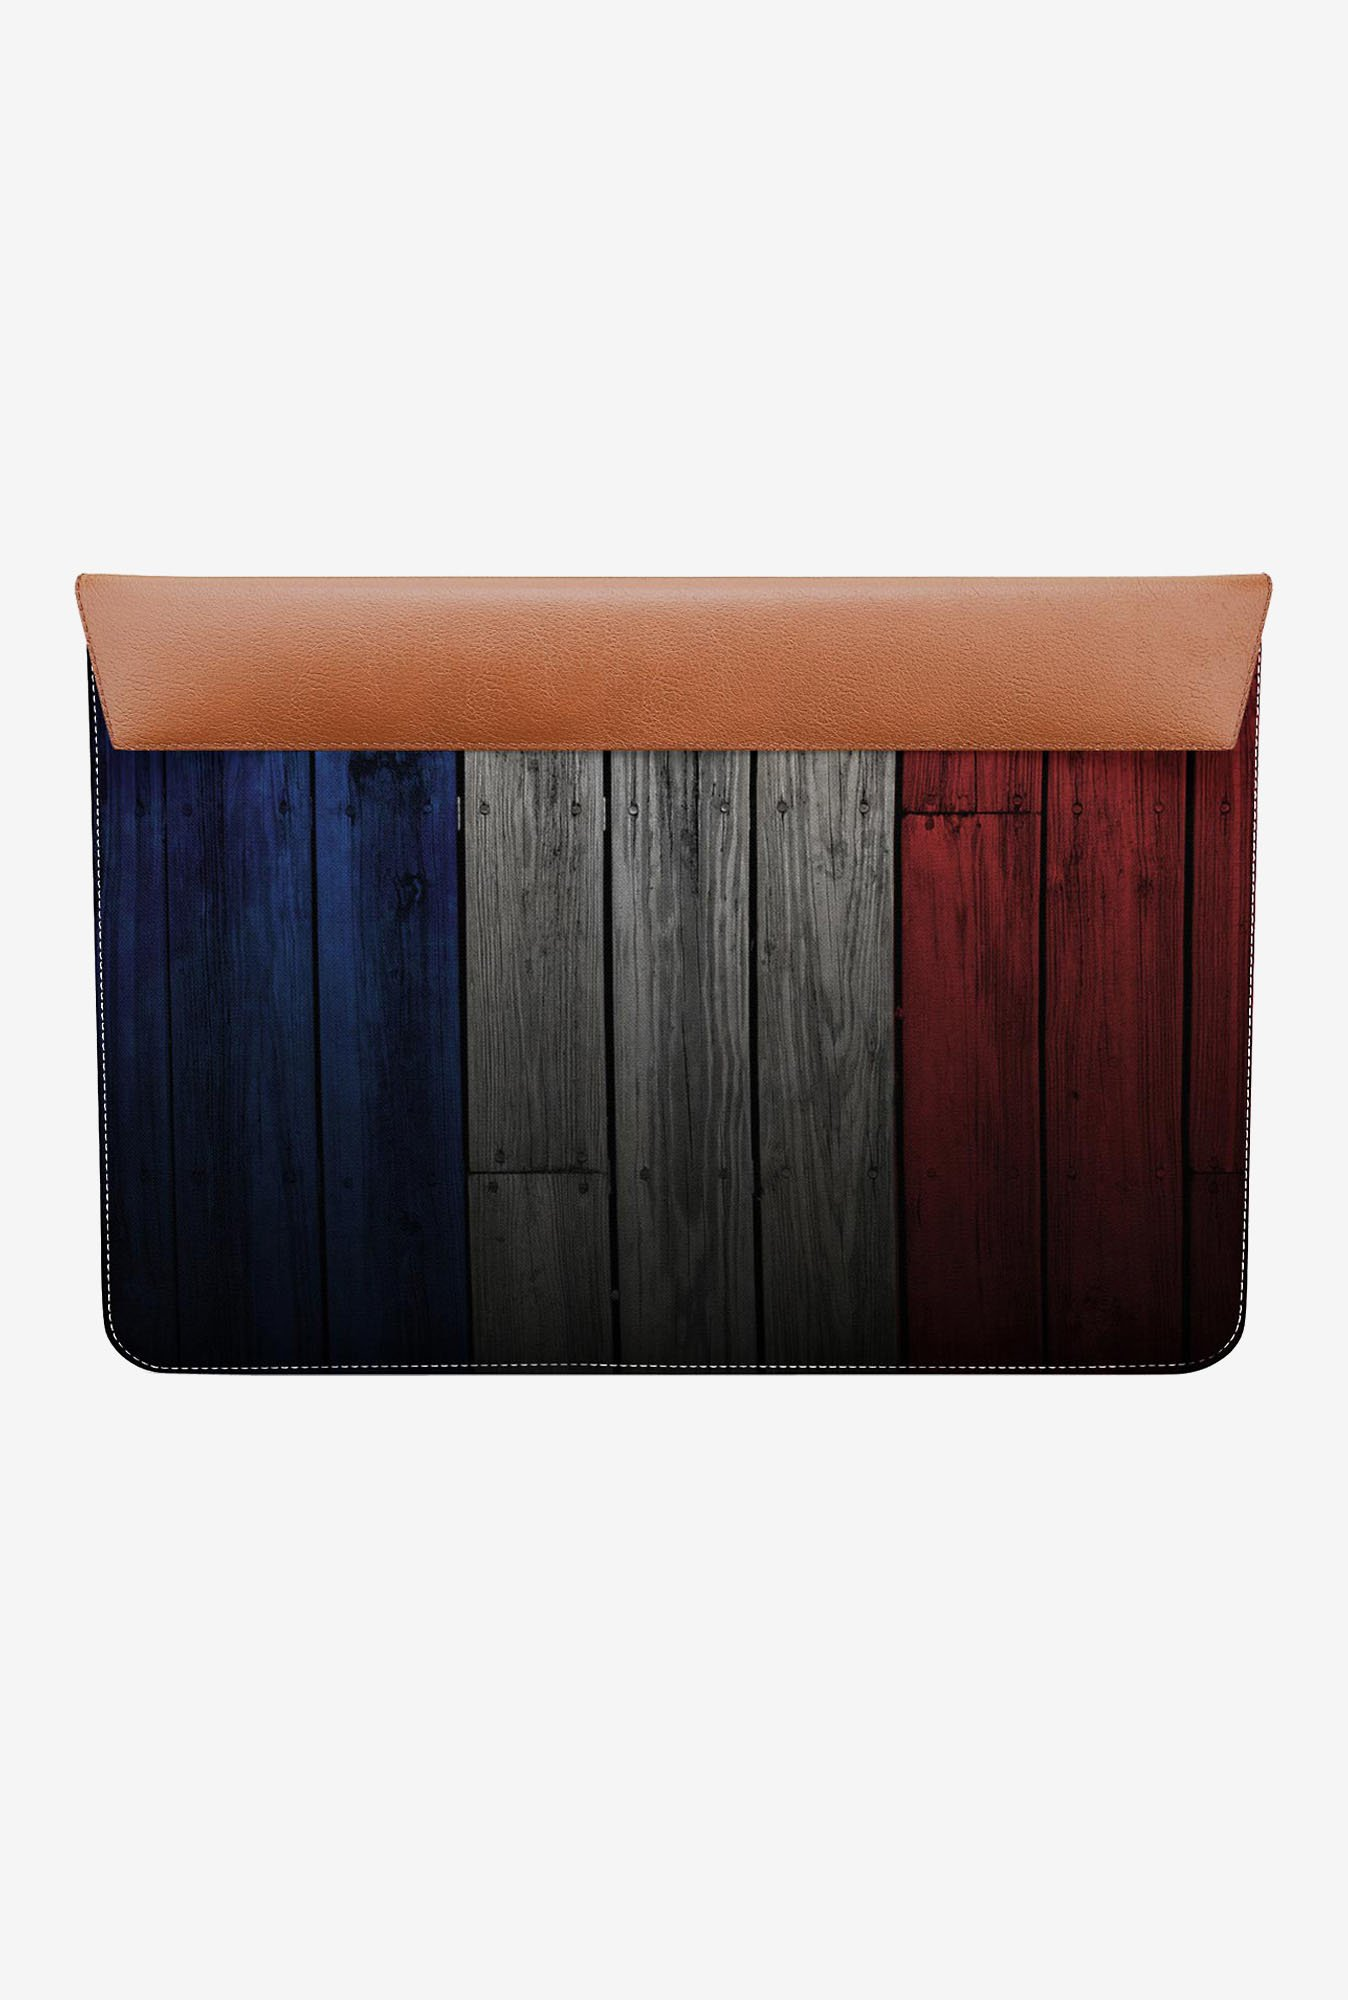 DailyObjects The French MacBook Pro 15 Envelope Sleeve